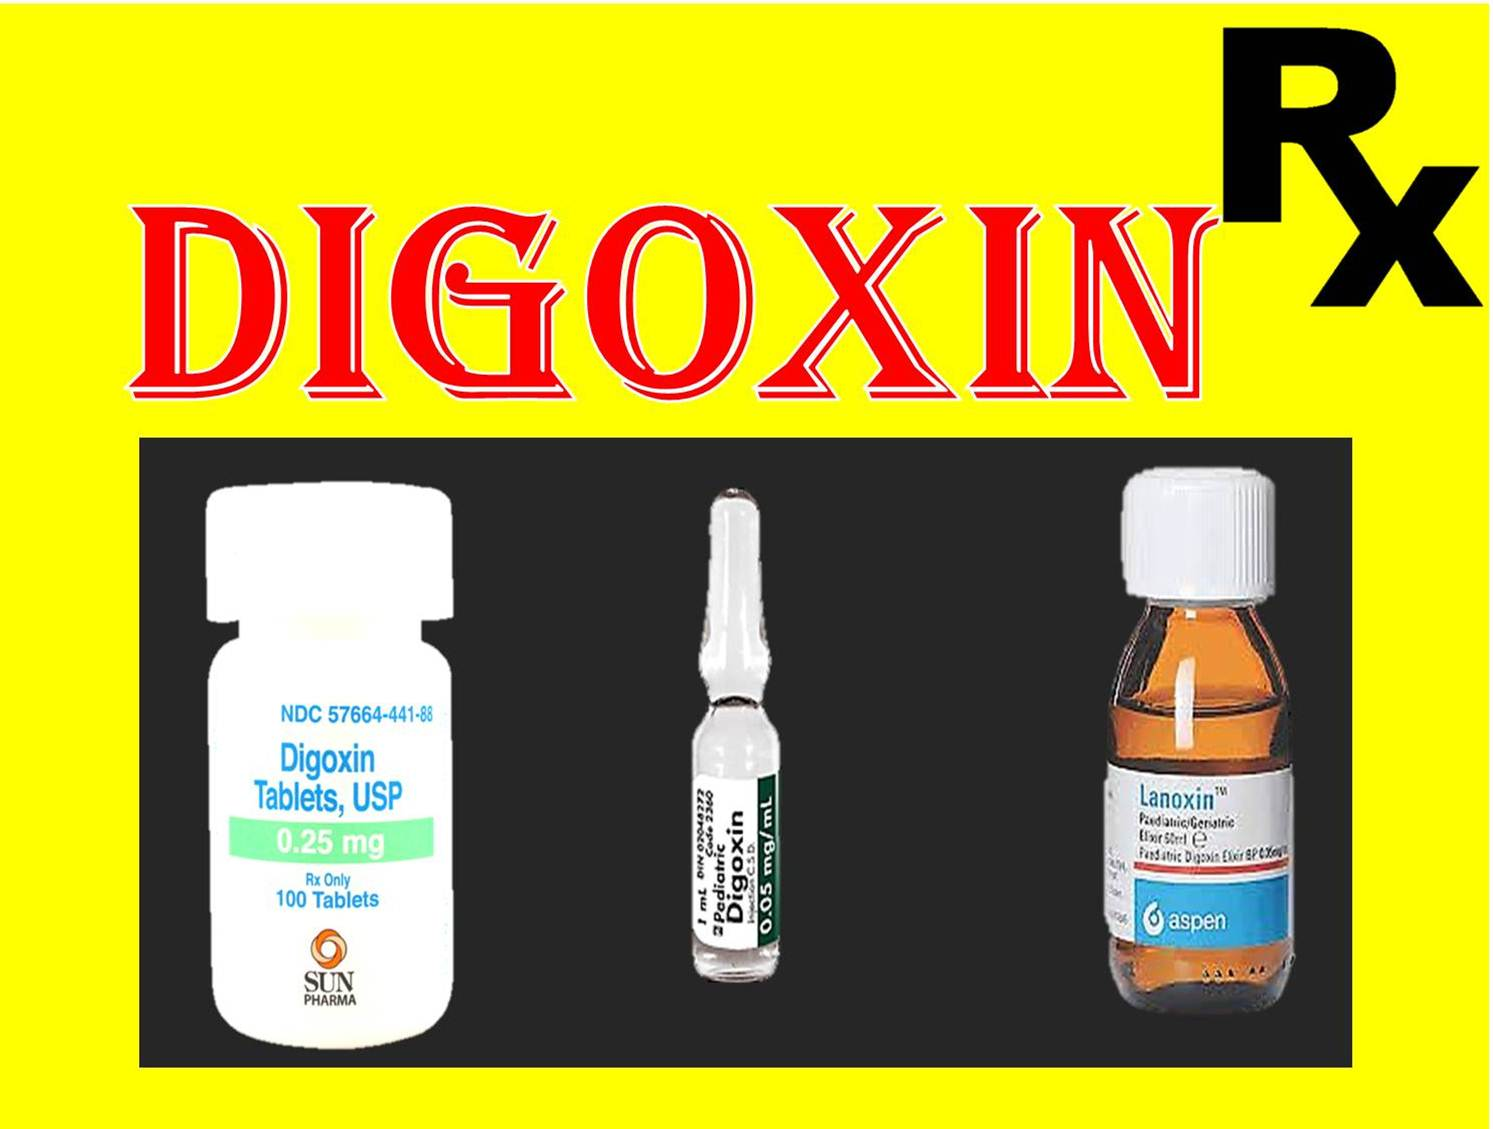 Digoxin drug full information